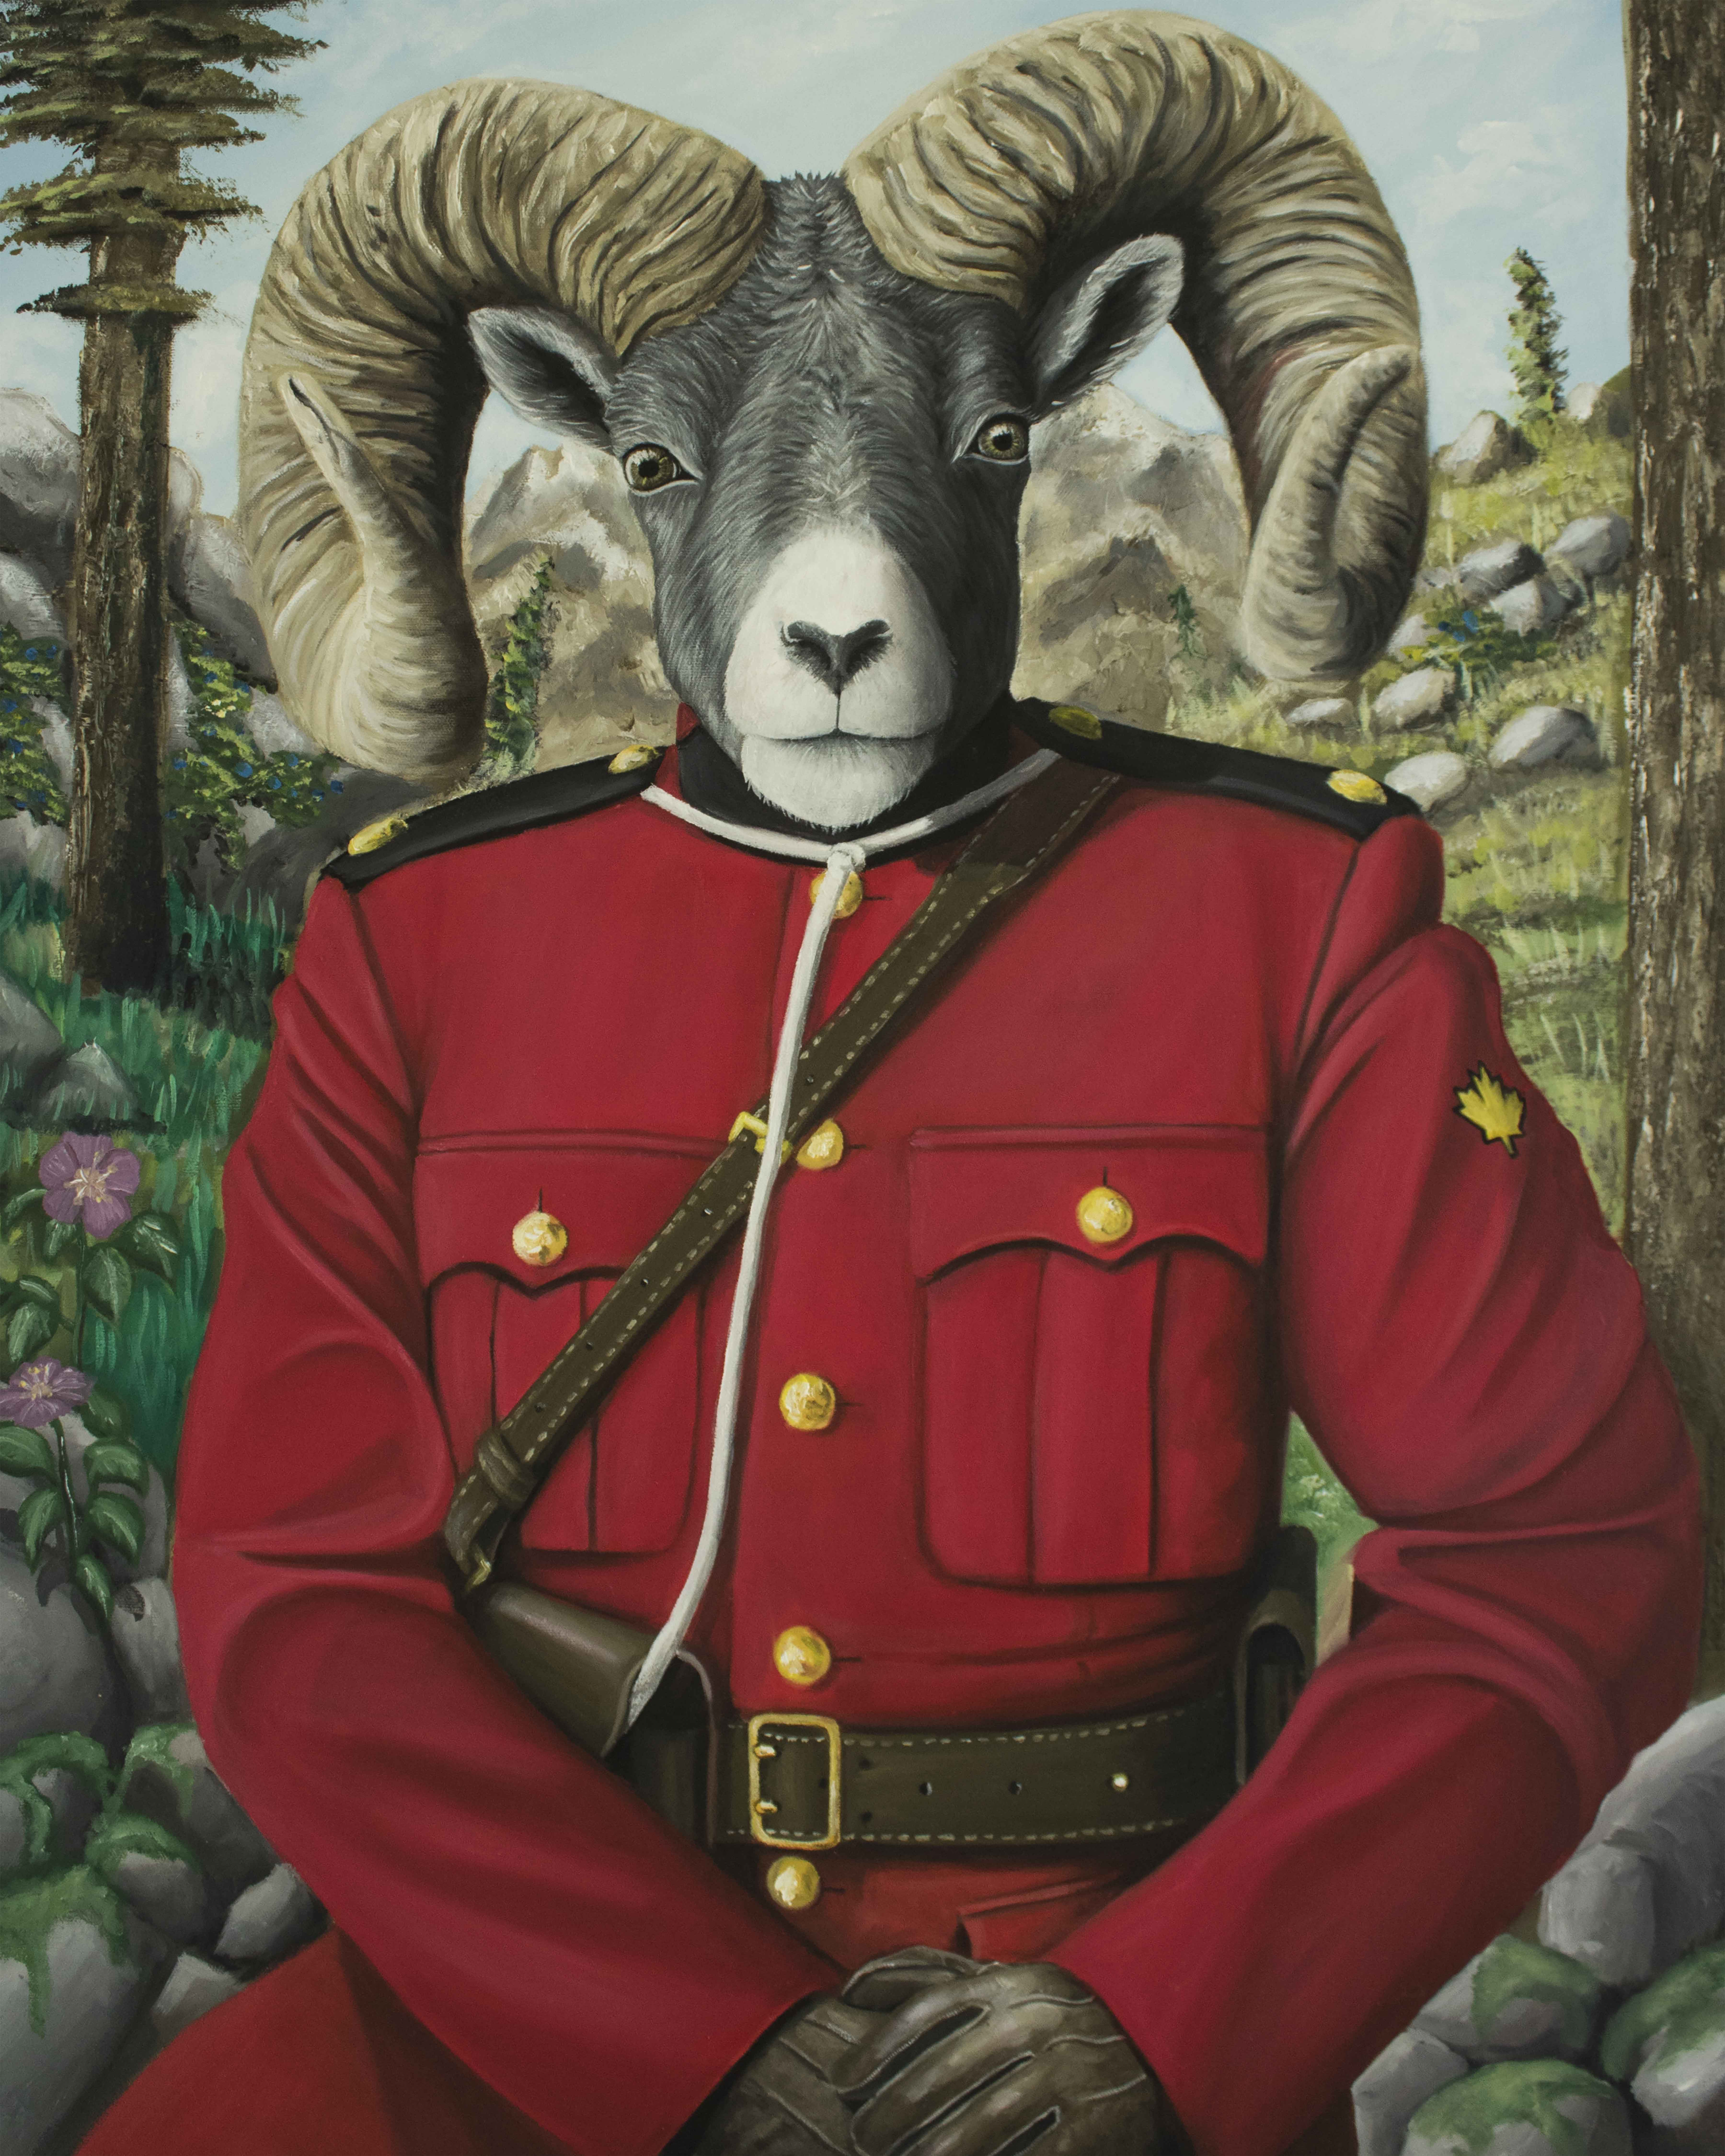 RCMP Bighorn Sheep